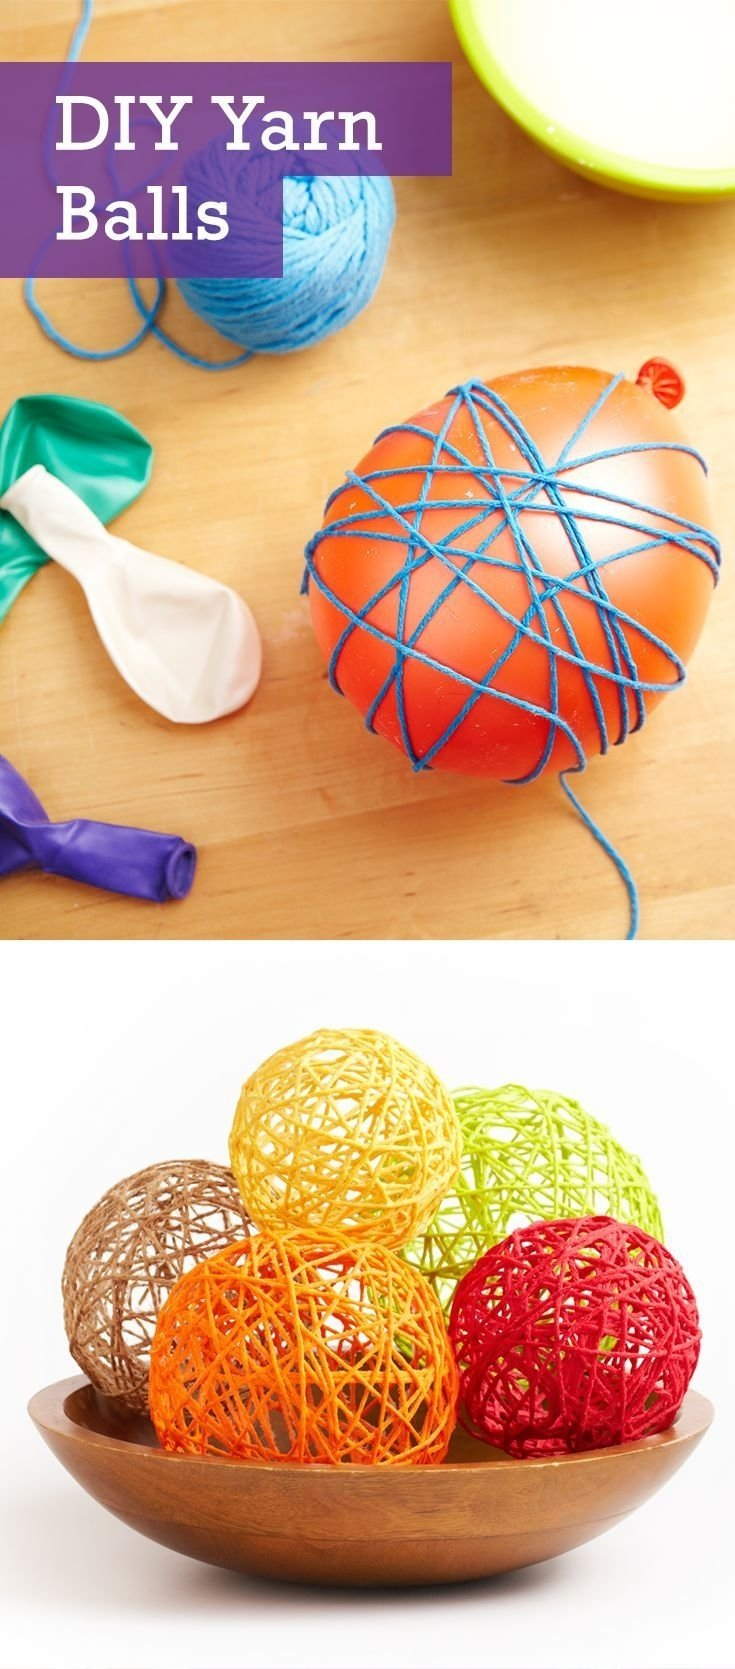 10 Attractive Cheap Arts And Crafts Ideas fun with yarn crafts ideas yarn ball yarns and craft 2021